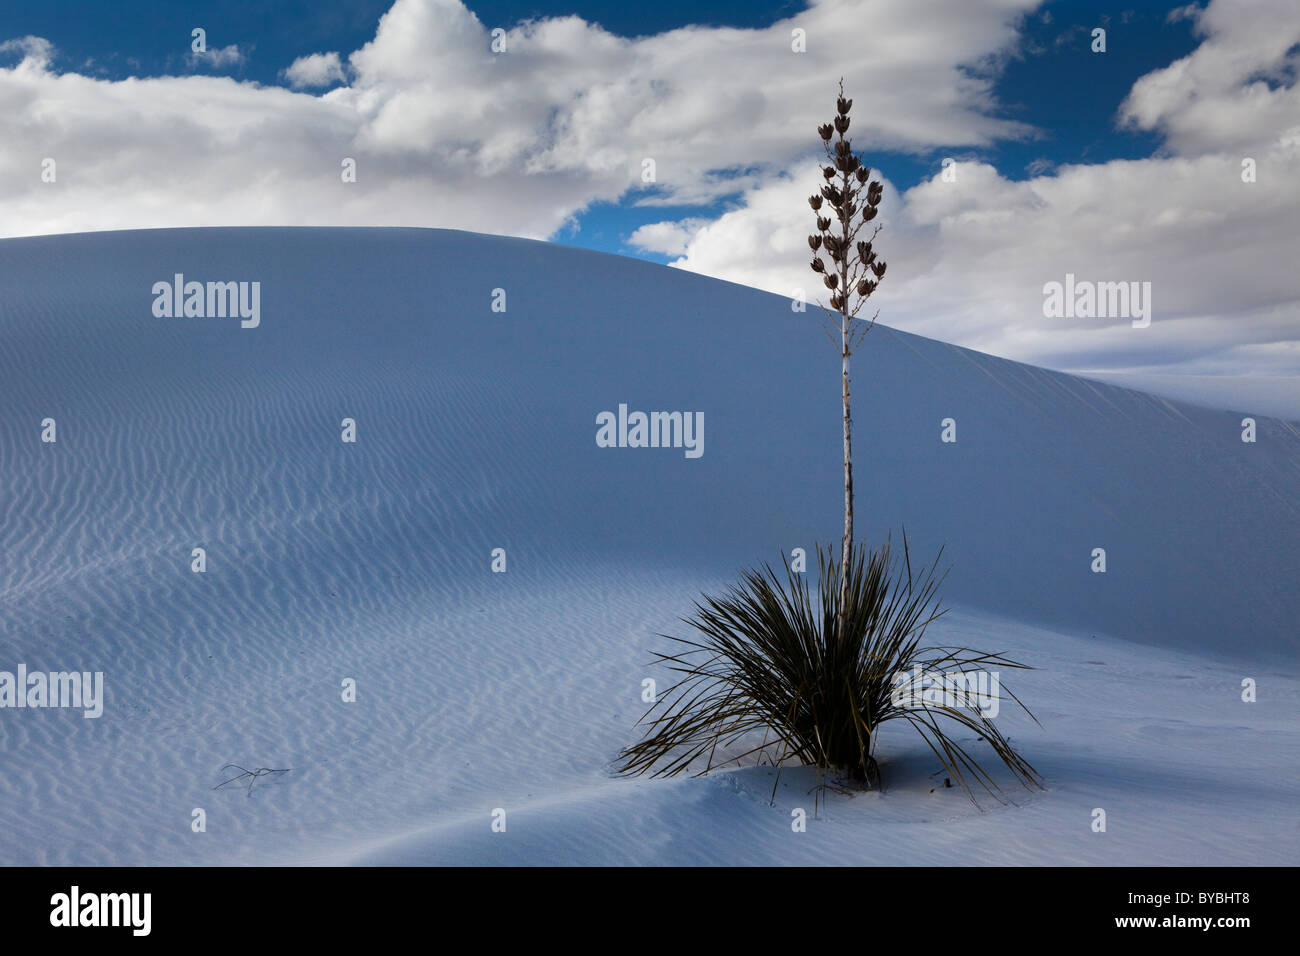 White Gypsum sand dunes in a desert with mountains, White Sands National Monument, New Mexico, USA - Stock Image